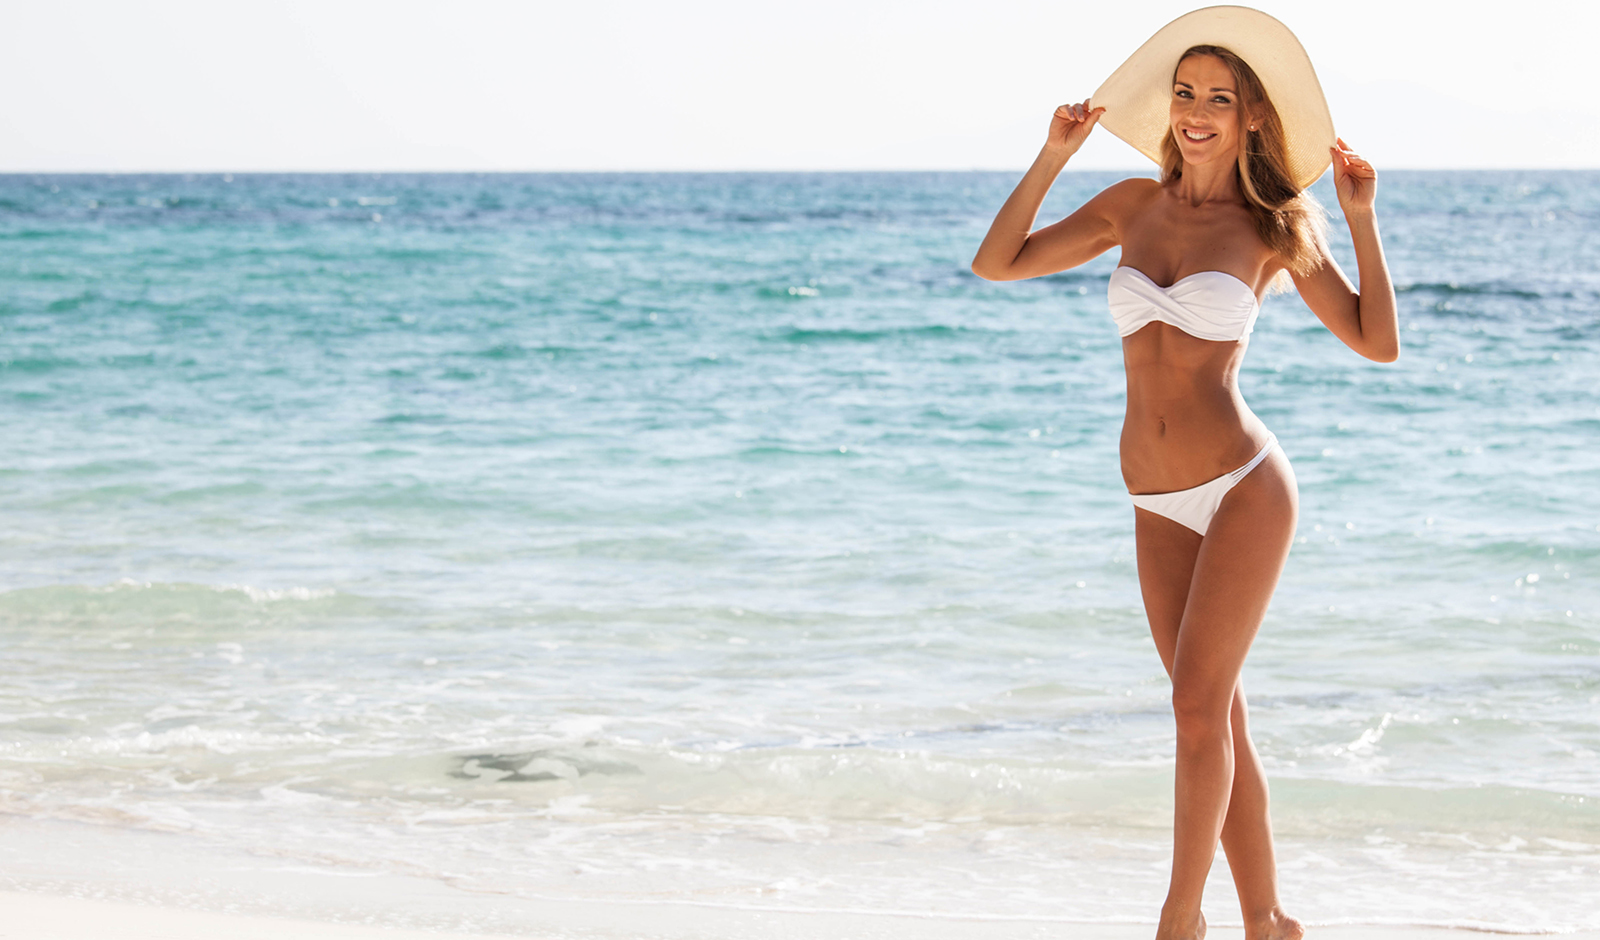 how-to-make-your-man-worship-you-woman-in-hat-on-beach-confident